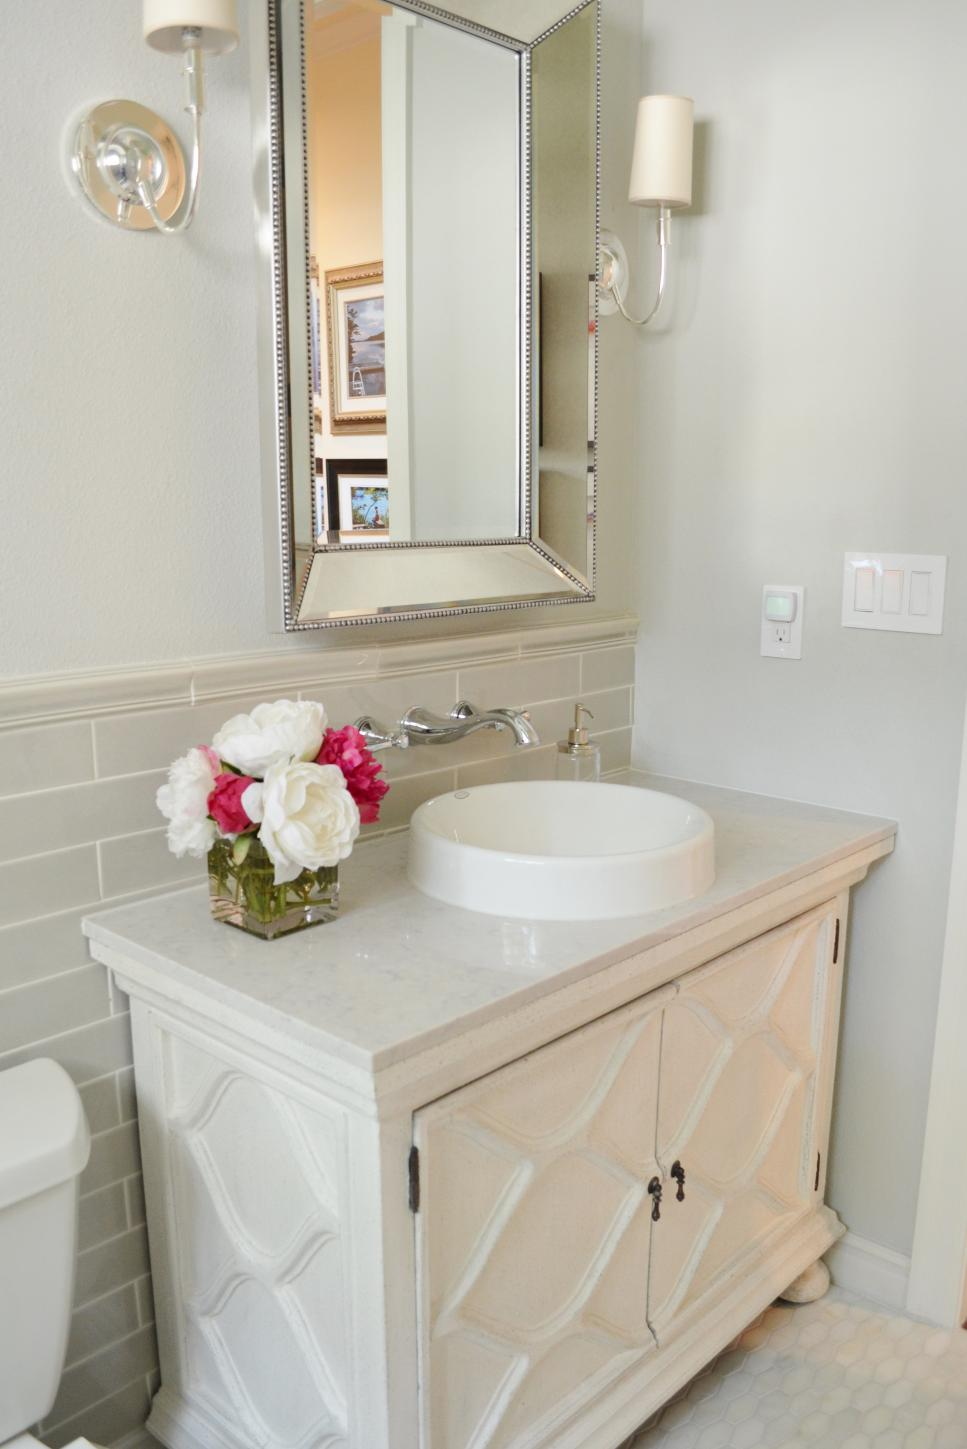 Inexpensive Bathroom Remodeling How Much Budget Bathroom Remodel You Need  Home And Gardens